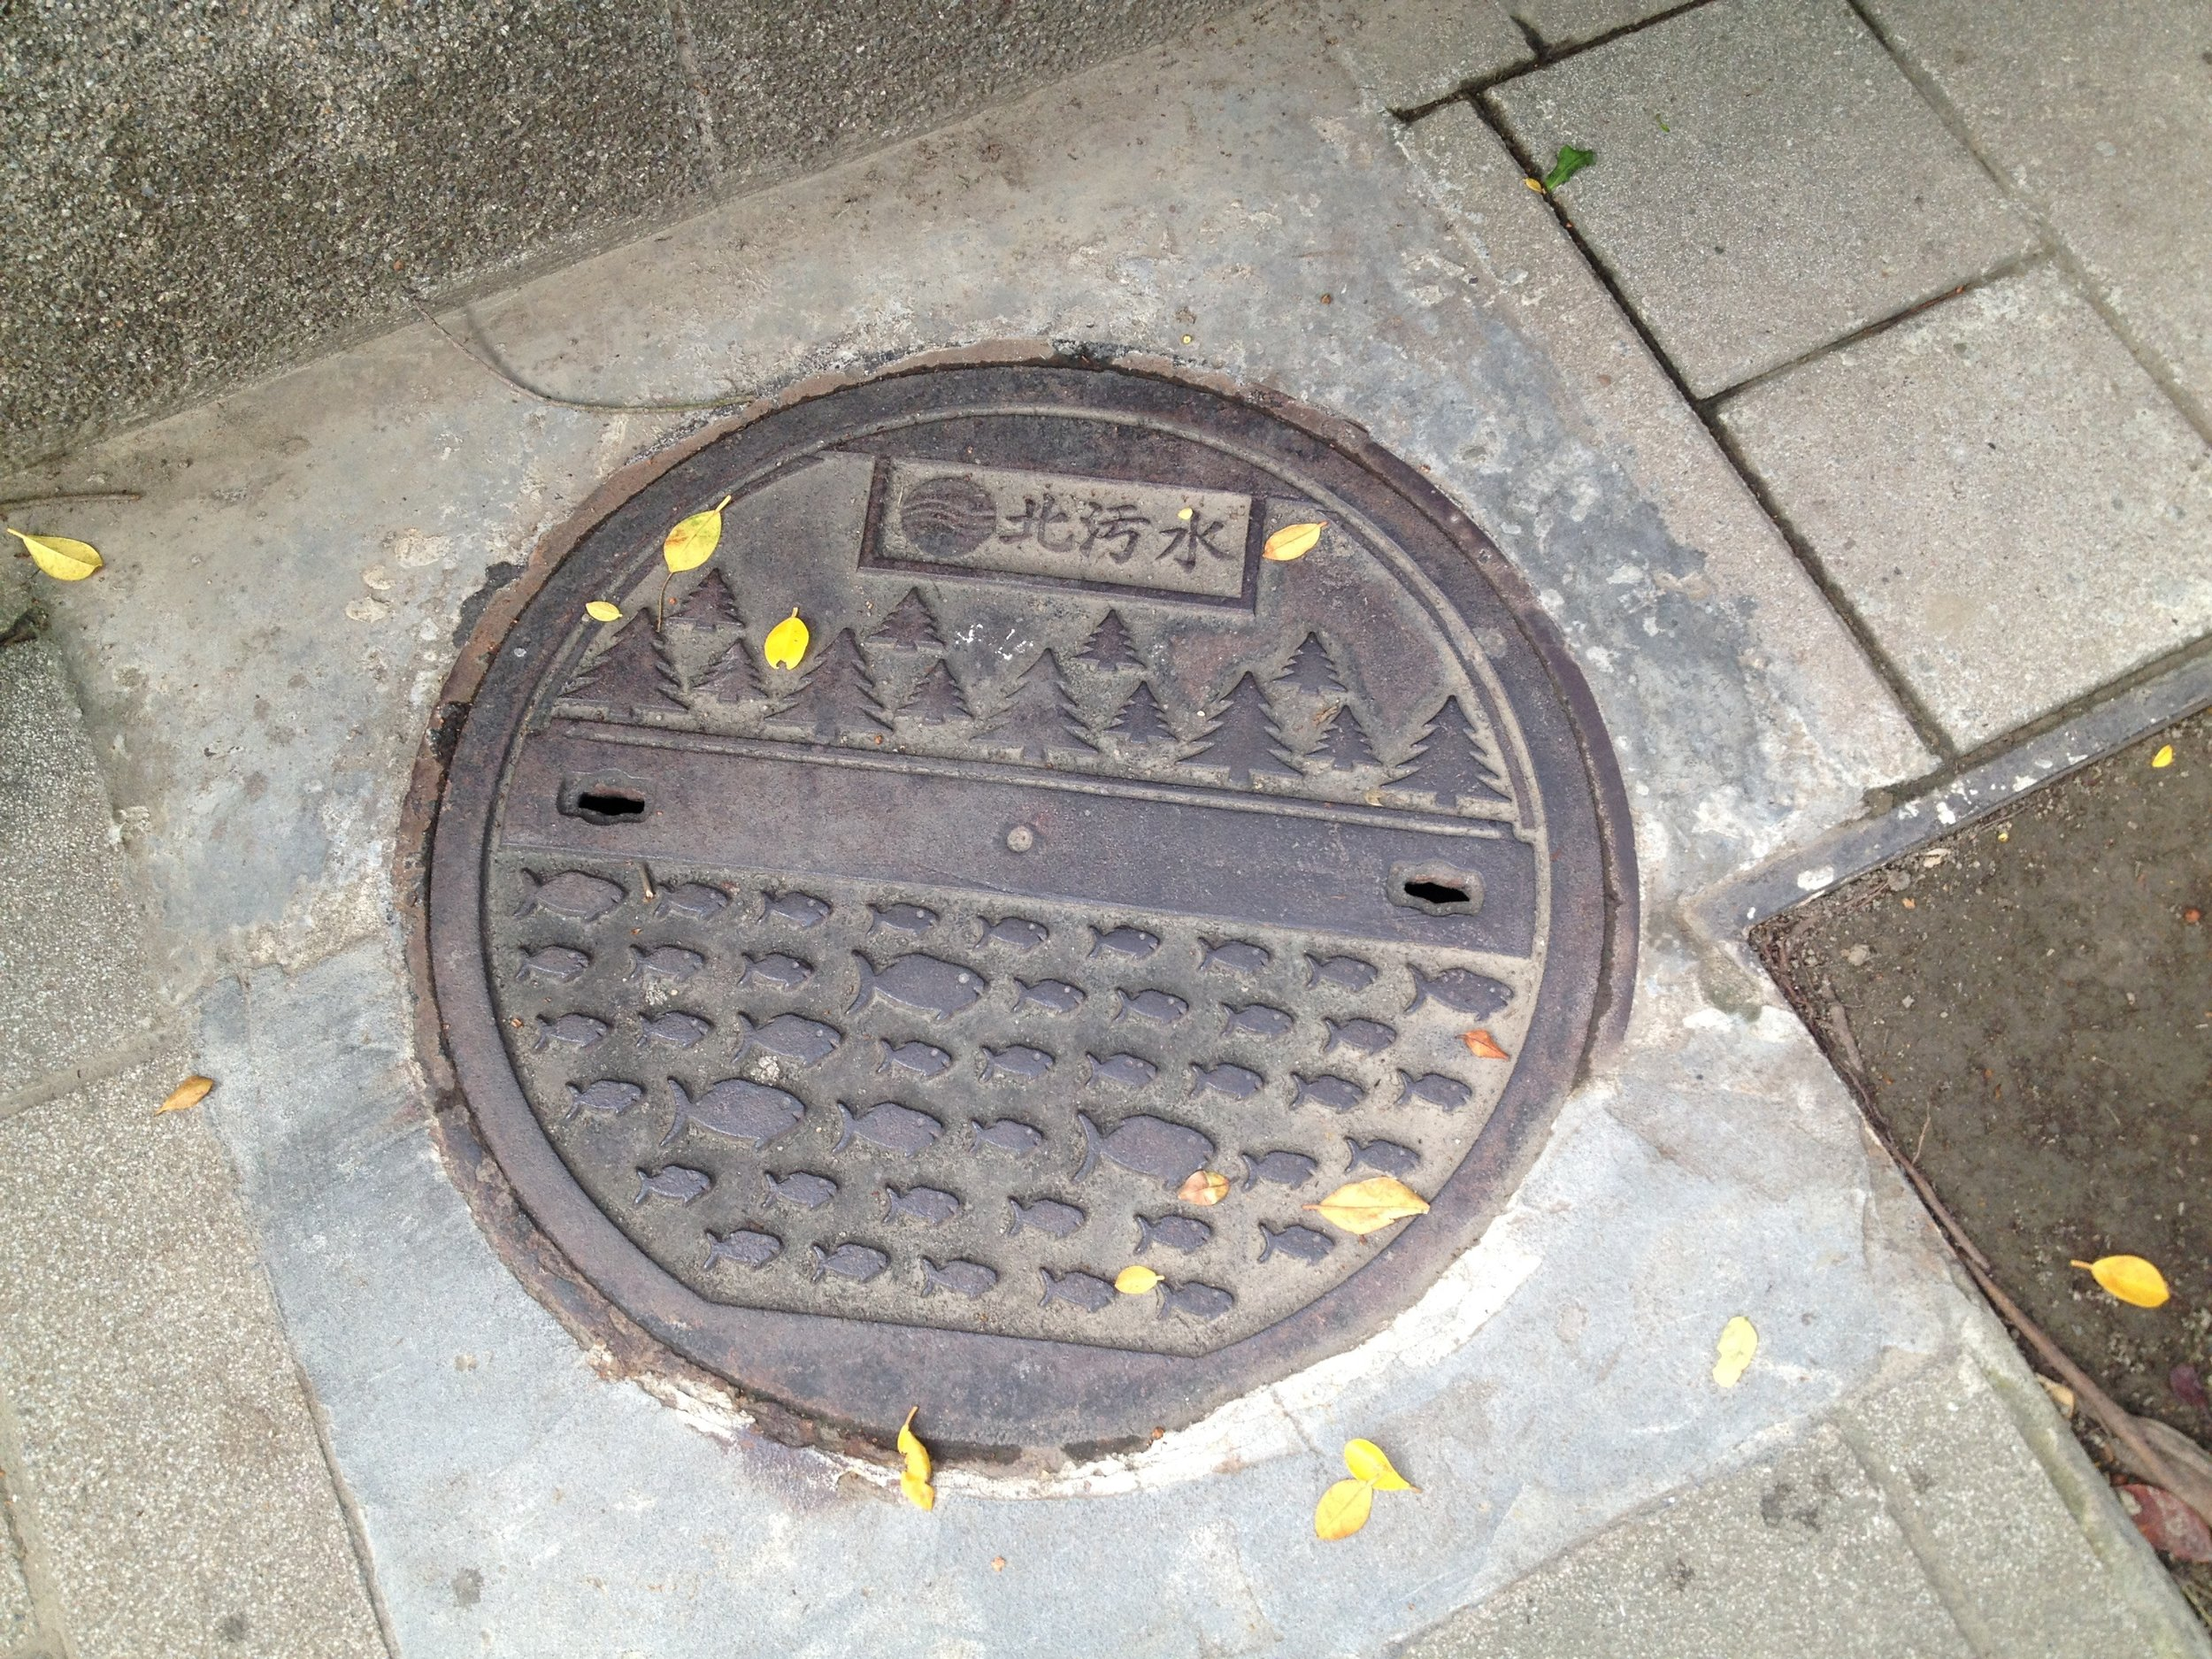 Manhole cover in Taipei, taken by Zara in 2014